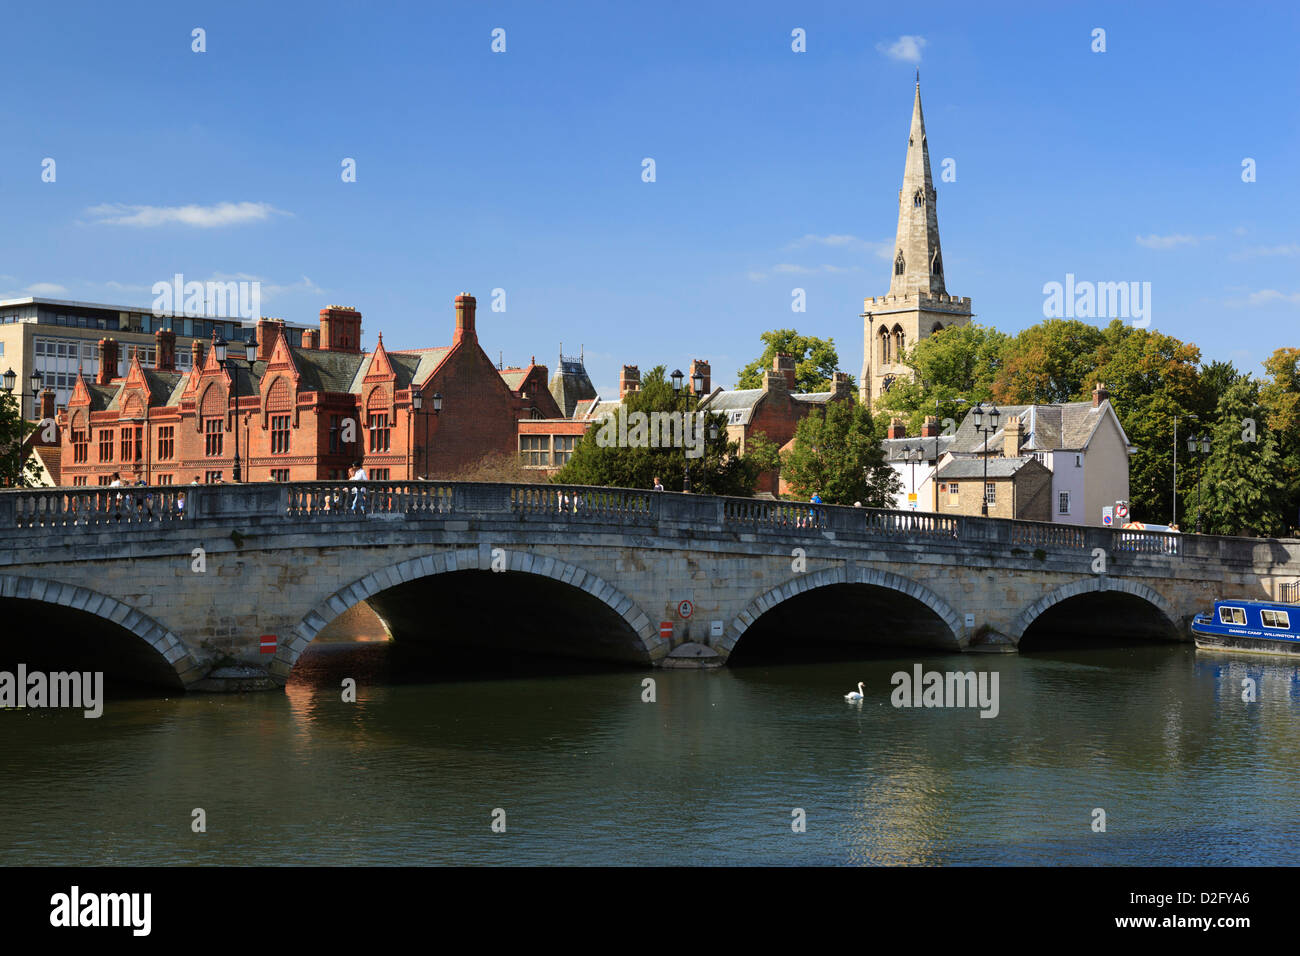 Church of St Paul and Bedford  over River Great Ouse - Stock Image